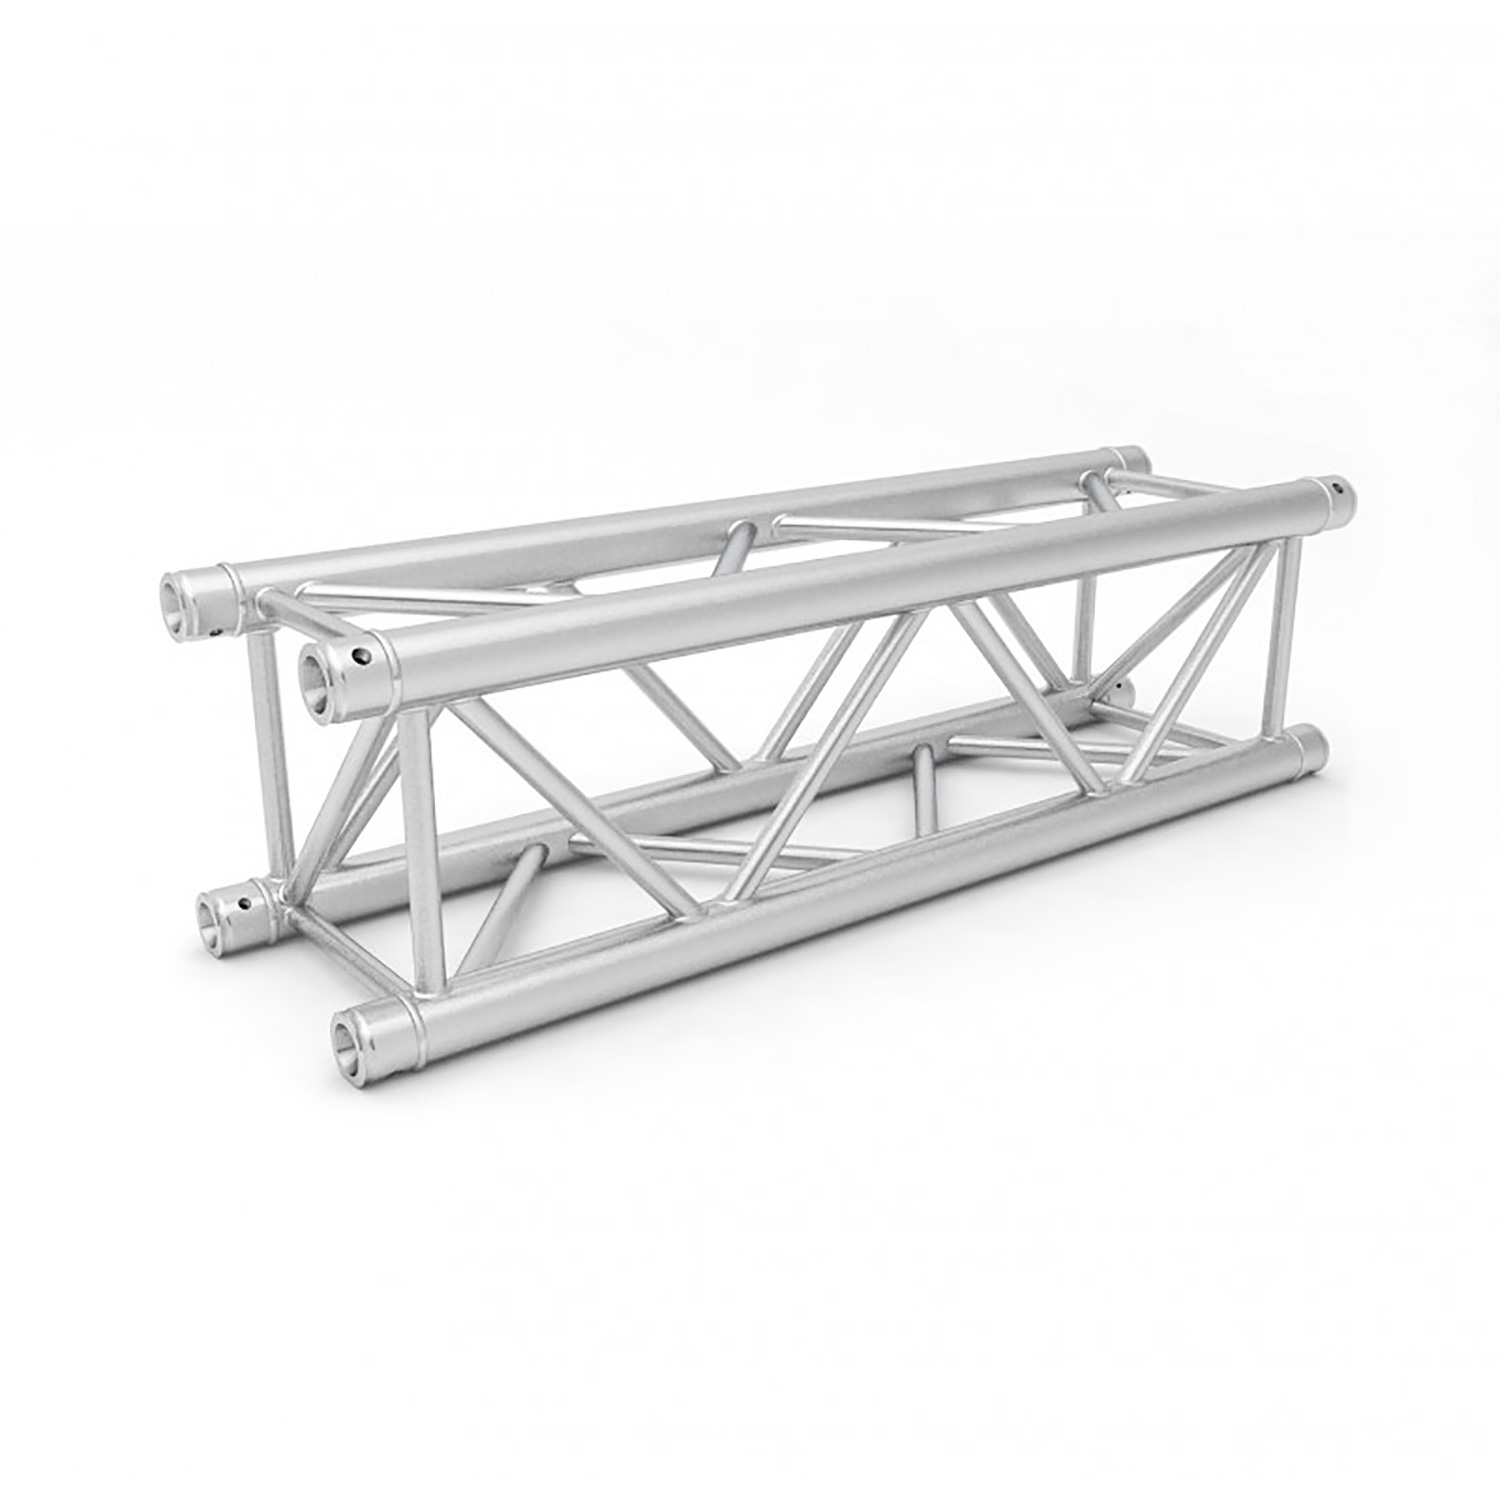 Straight Truss Section 250cm